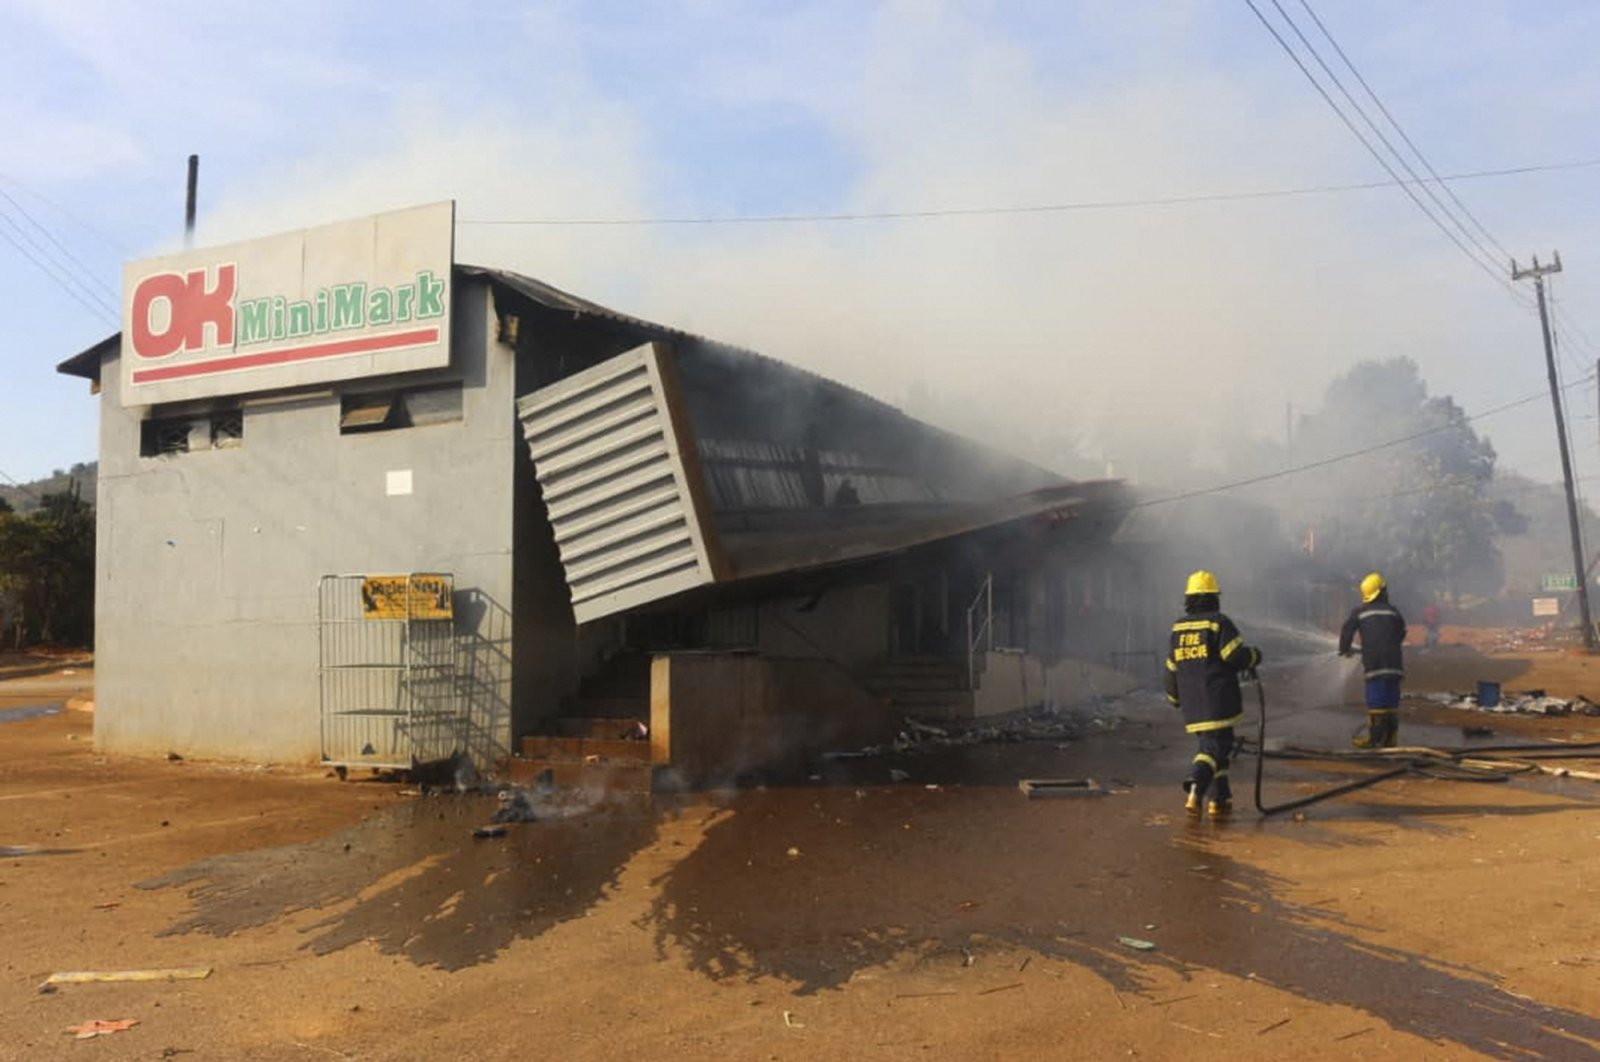 Firefighters extinguish a fire at a supermarket in Manzini, Eswatini, on June 30, 2021. (AFP Photo)